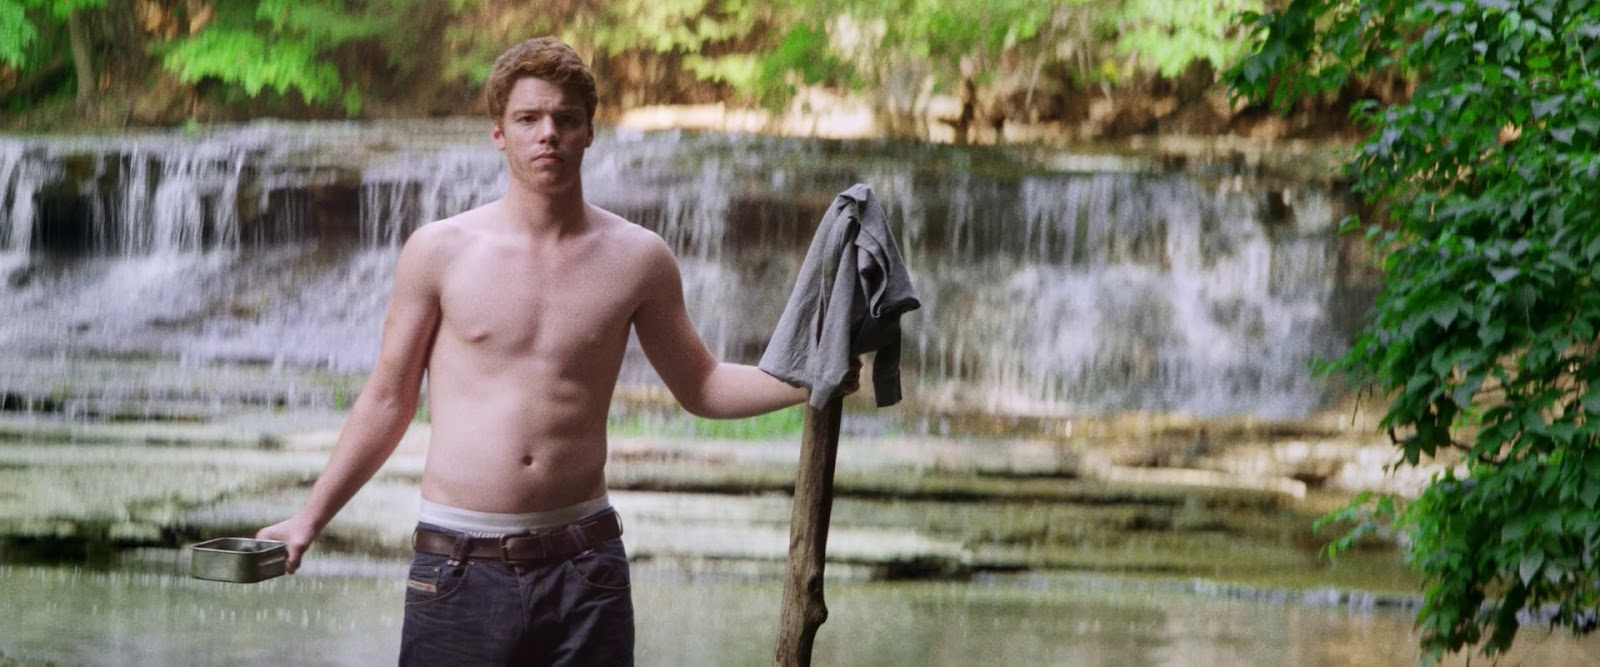 The Stars Come Out To Play: Gabriel Basso - Shirtless